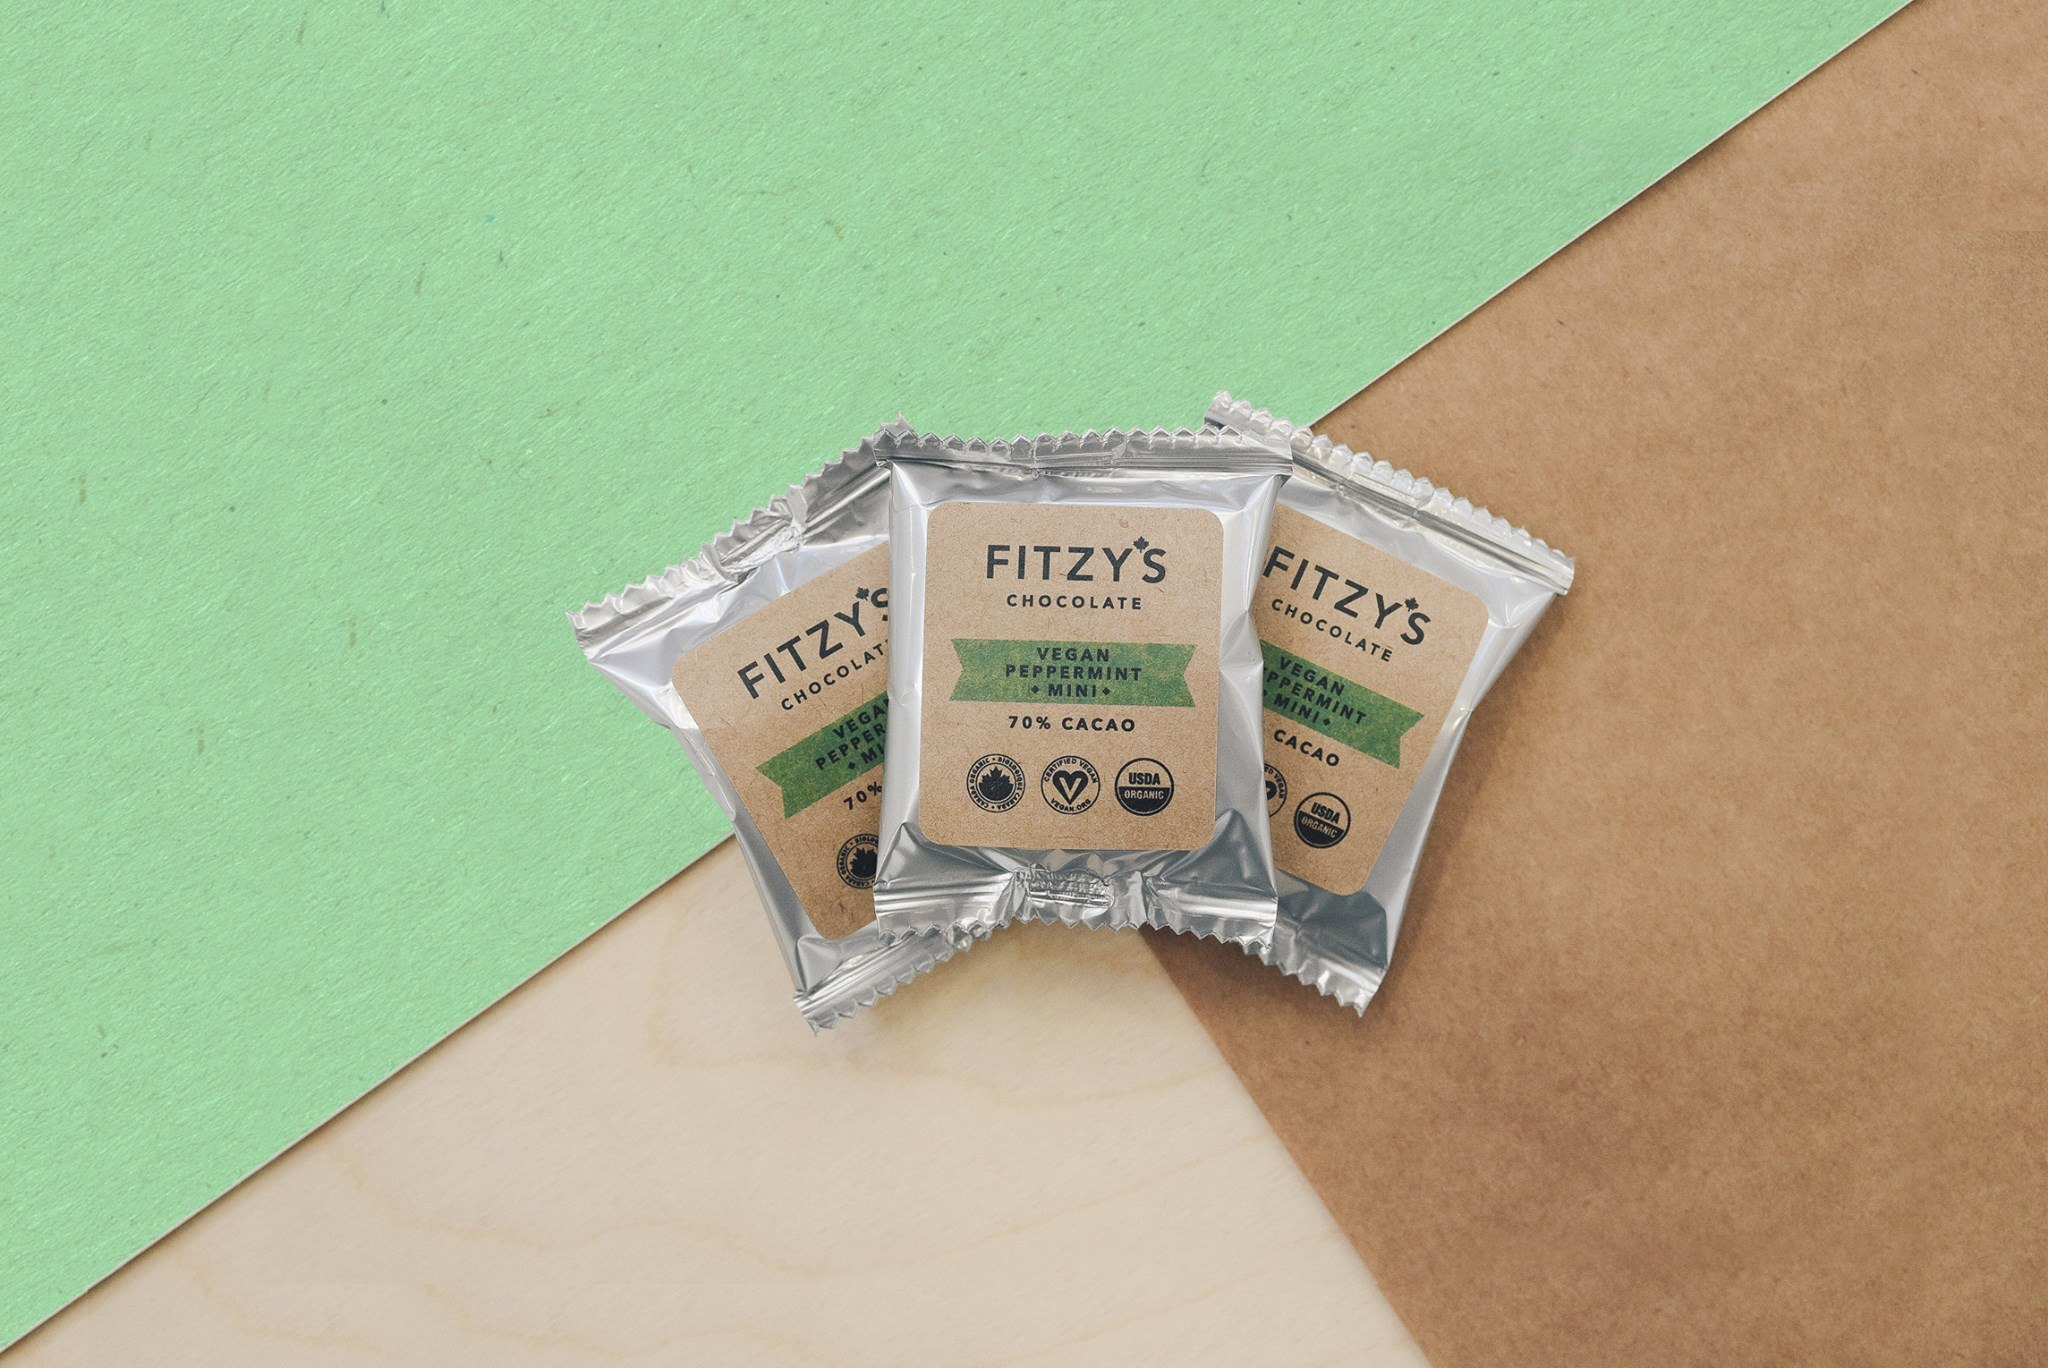 Fitzys Foods